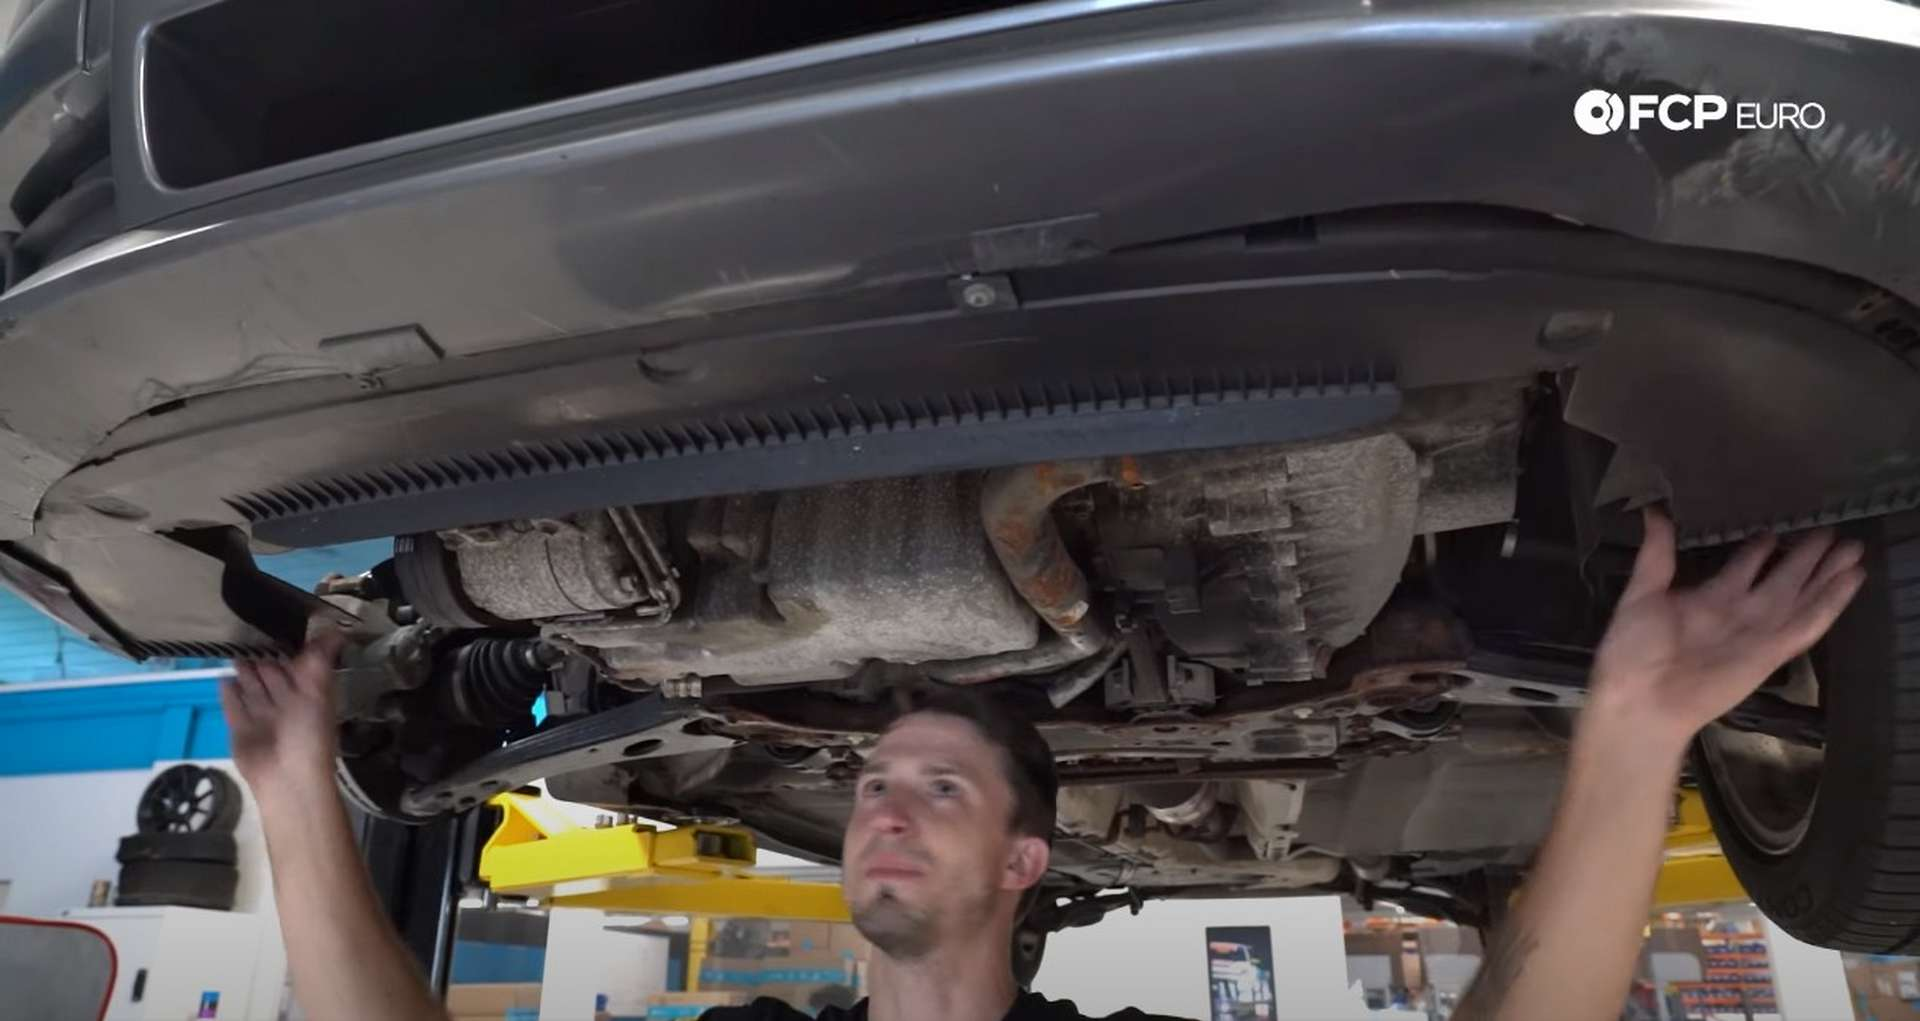 DIY Volvo Alternator and Serpentine Belt Replacement installing the lower air spoiler